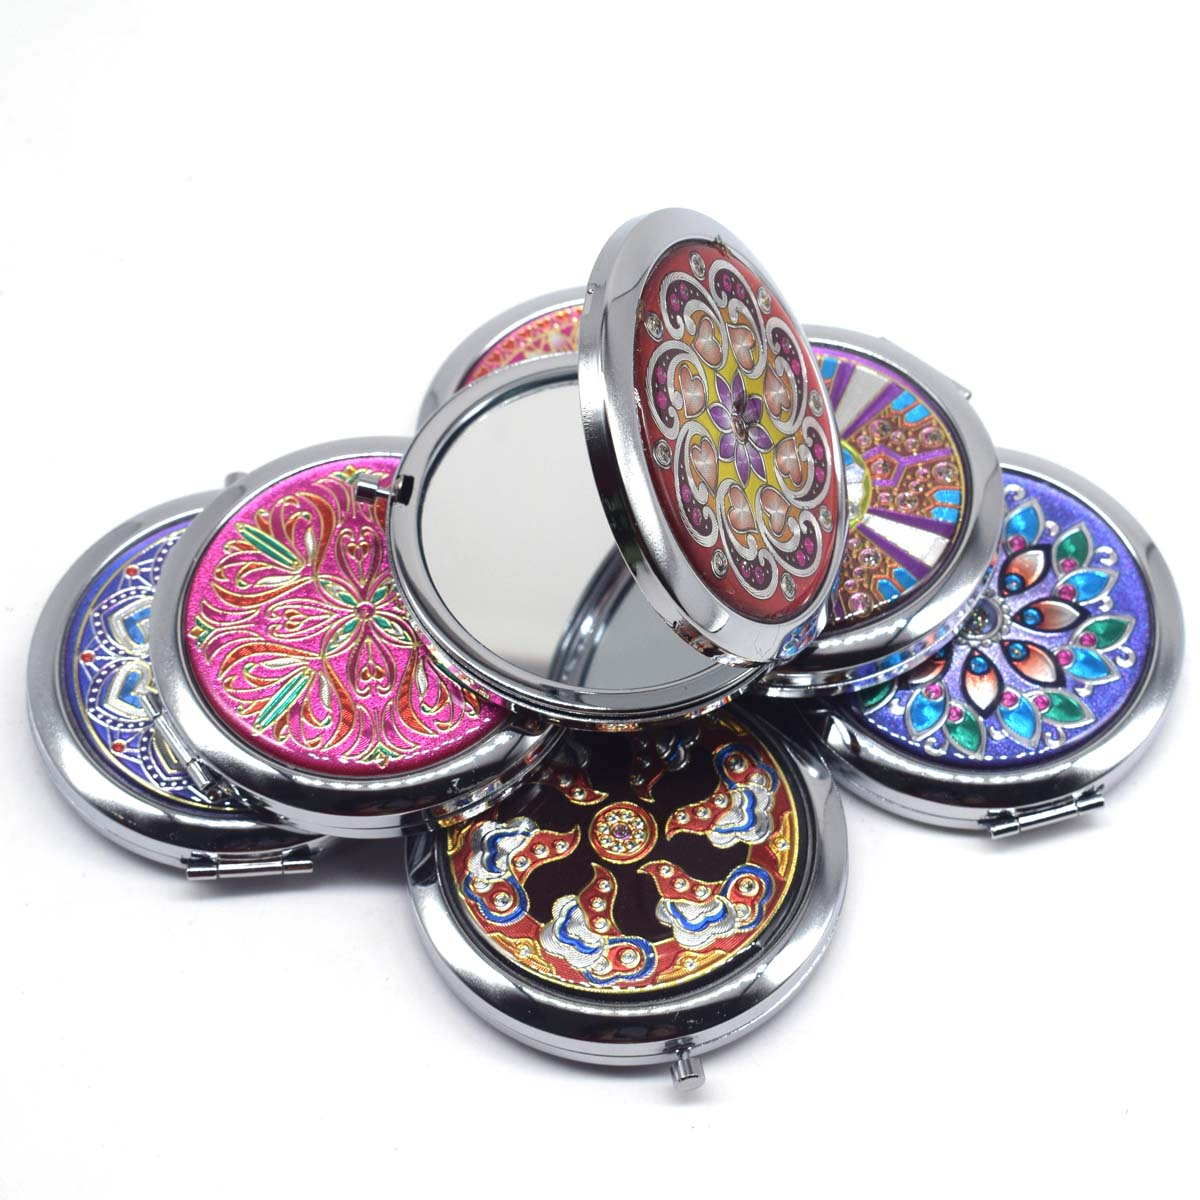 Купить с кэшбэком Portable Foldable Pocket Metal Makeup Compact Mirror Woman Cosmetic Mini Beauty Normal Magnifying Mirror Double Sides Mirrors